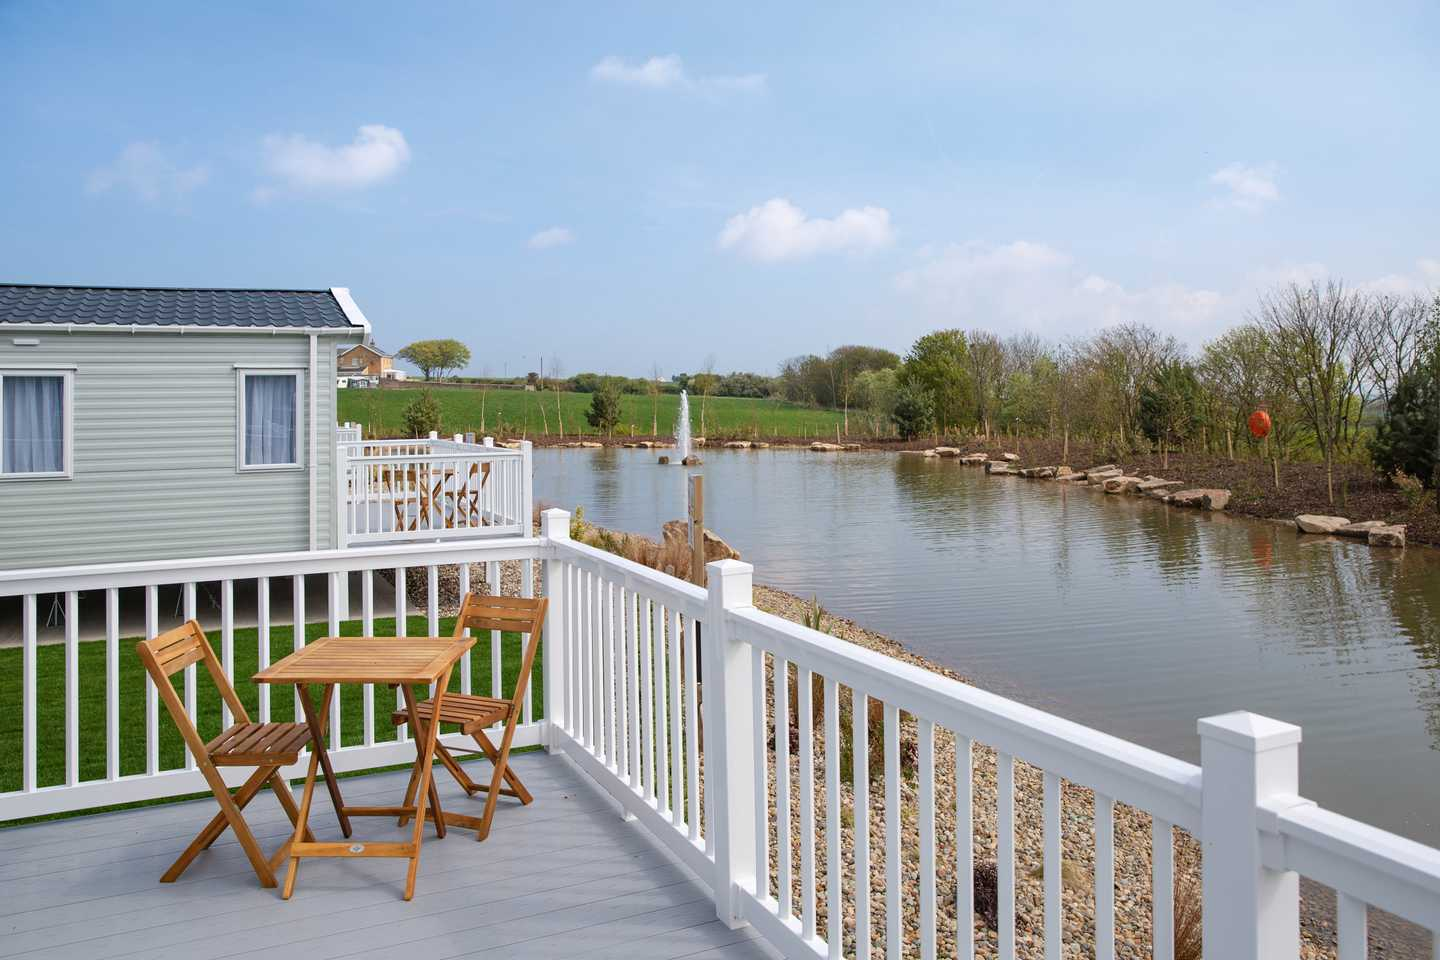 Platinum with decking at Wold Vale, Blue Dolphin